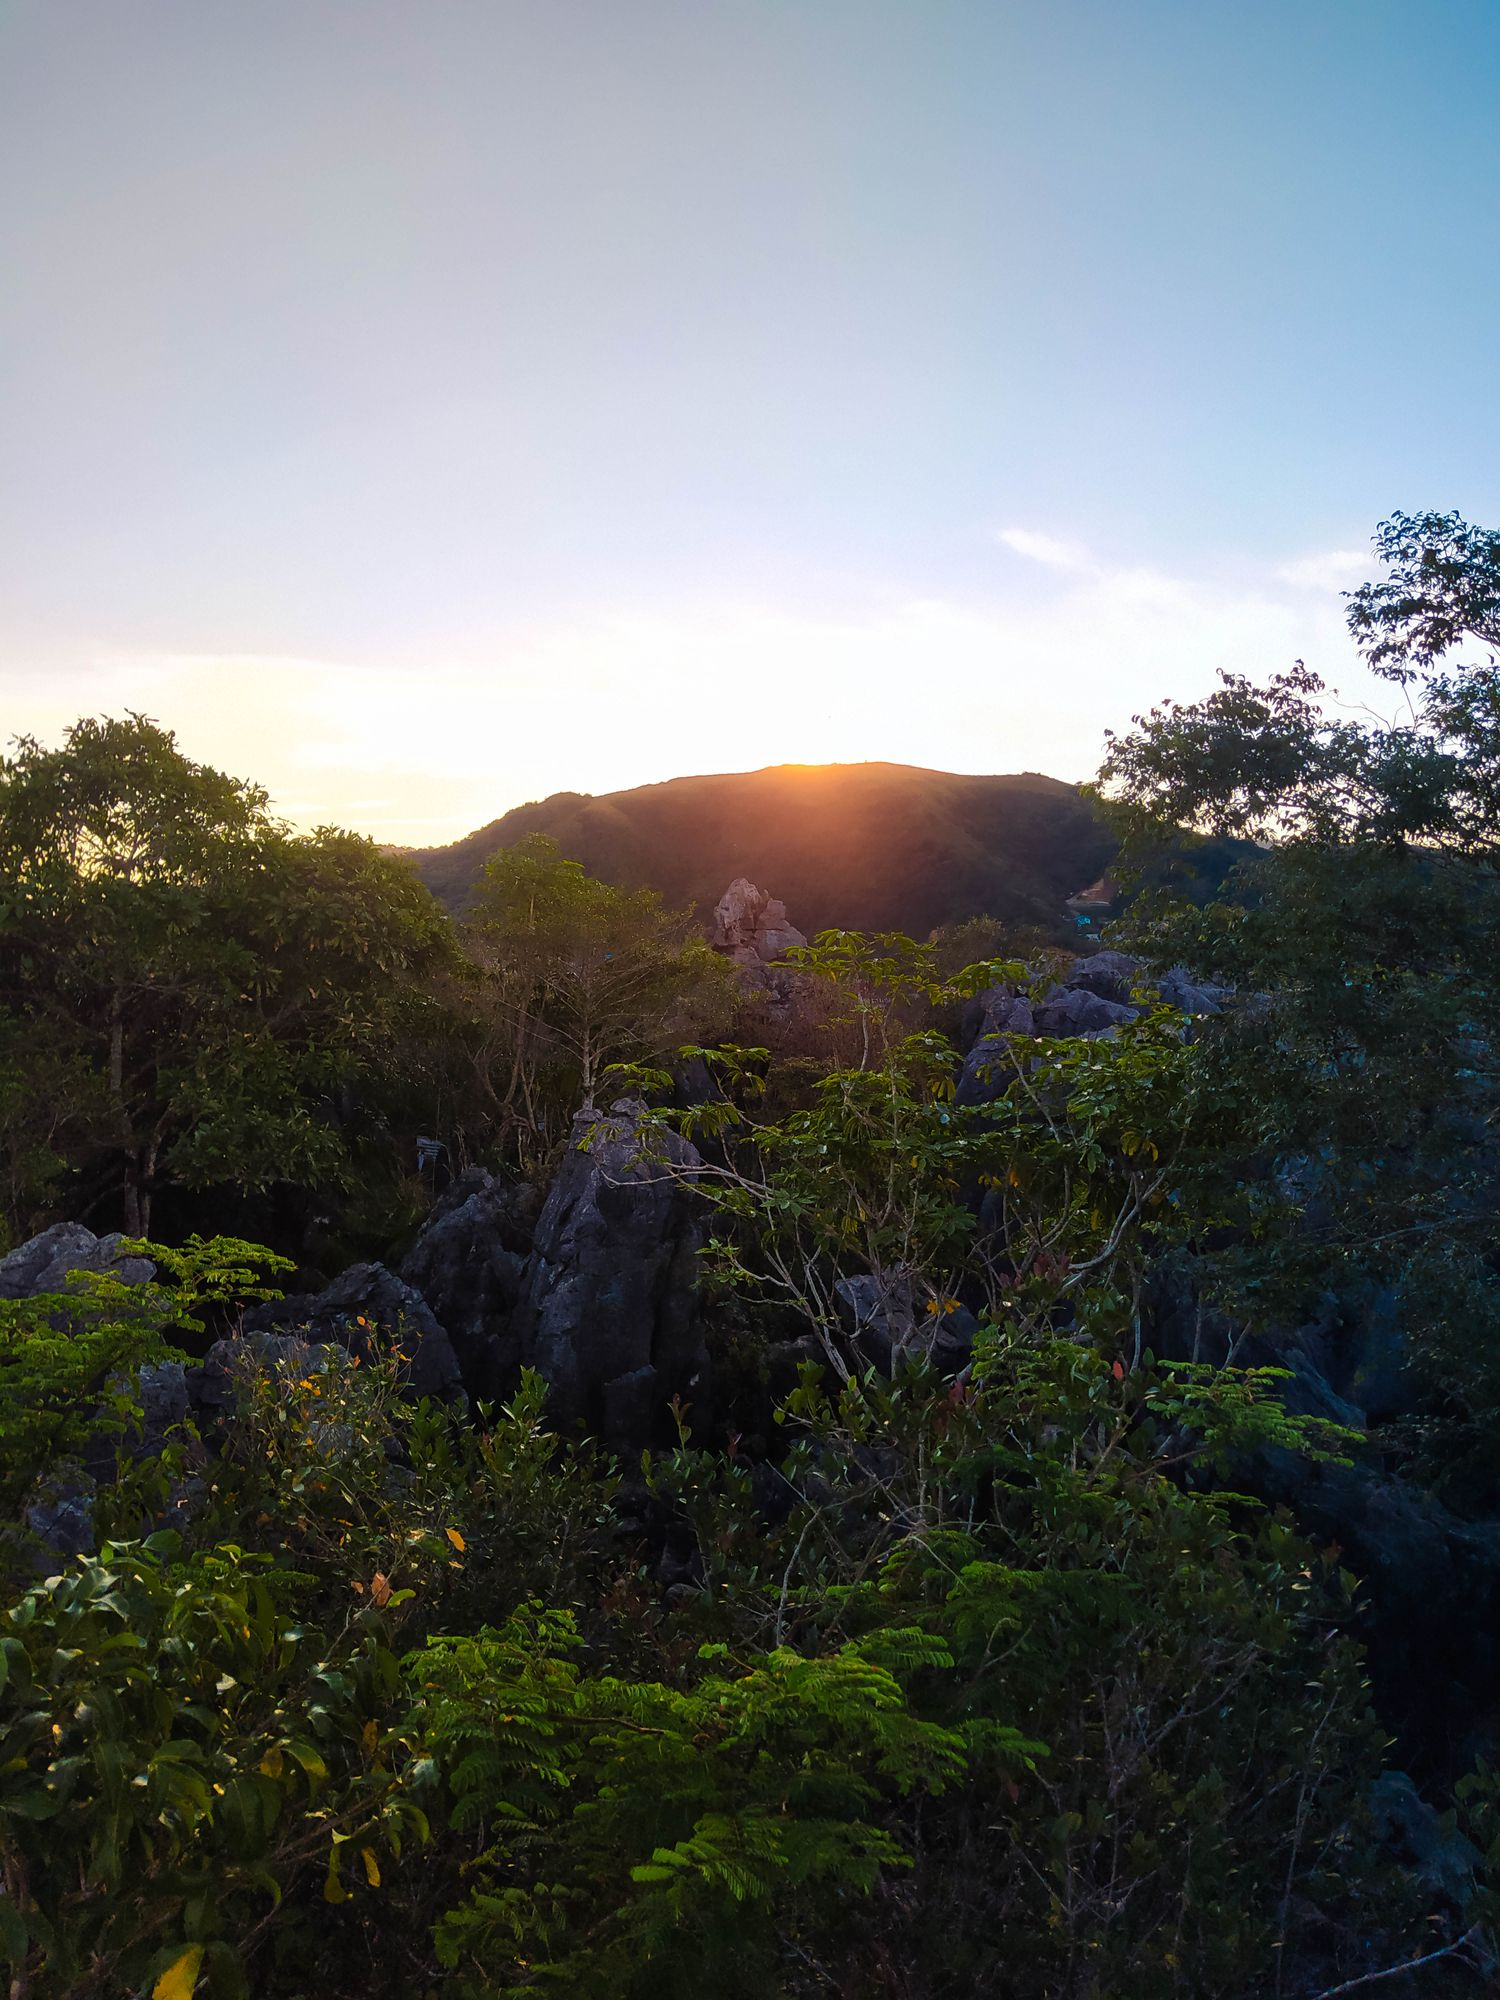 Sun rising above a mountain with limestone rocks and vegetation in the foreground